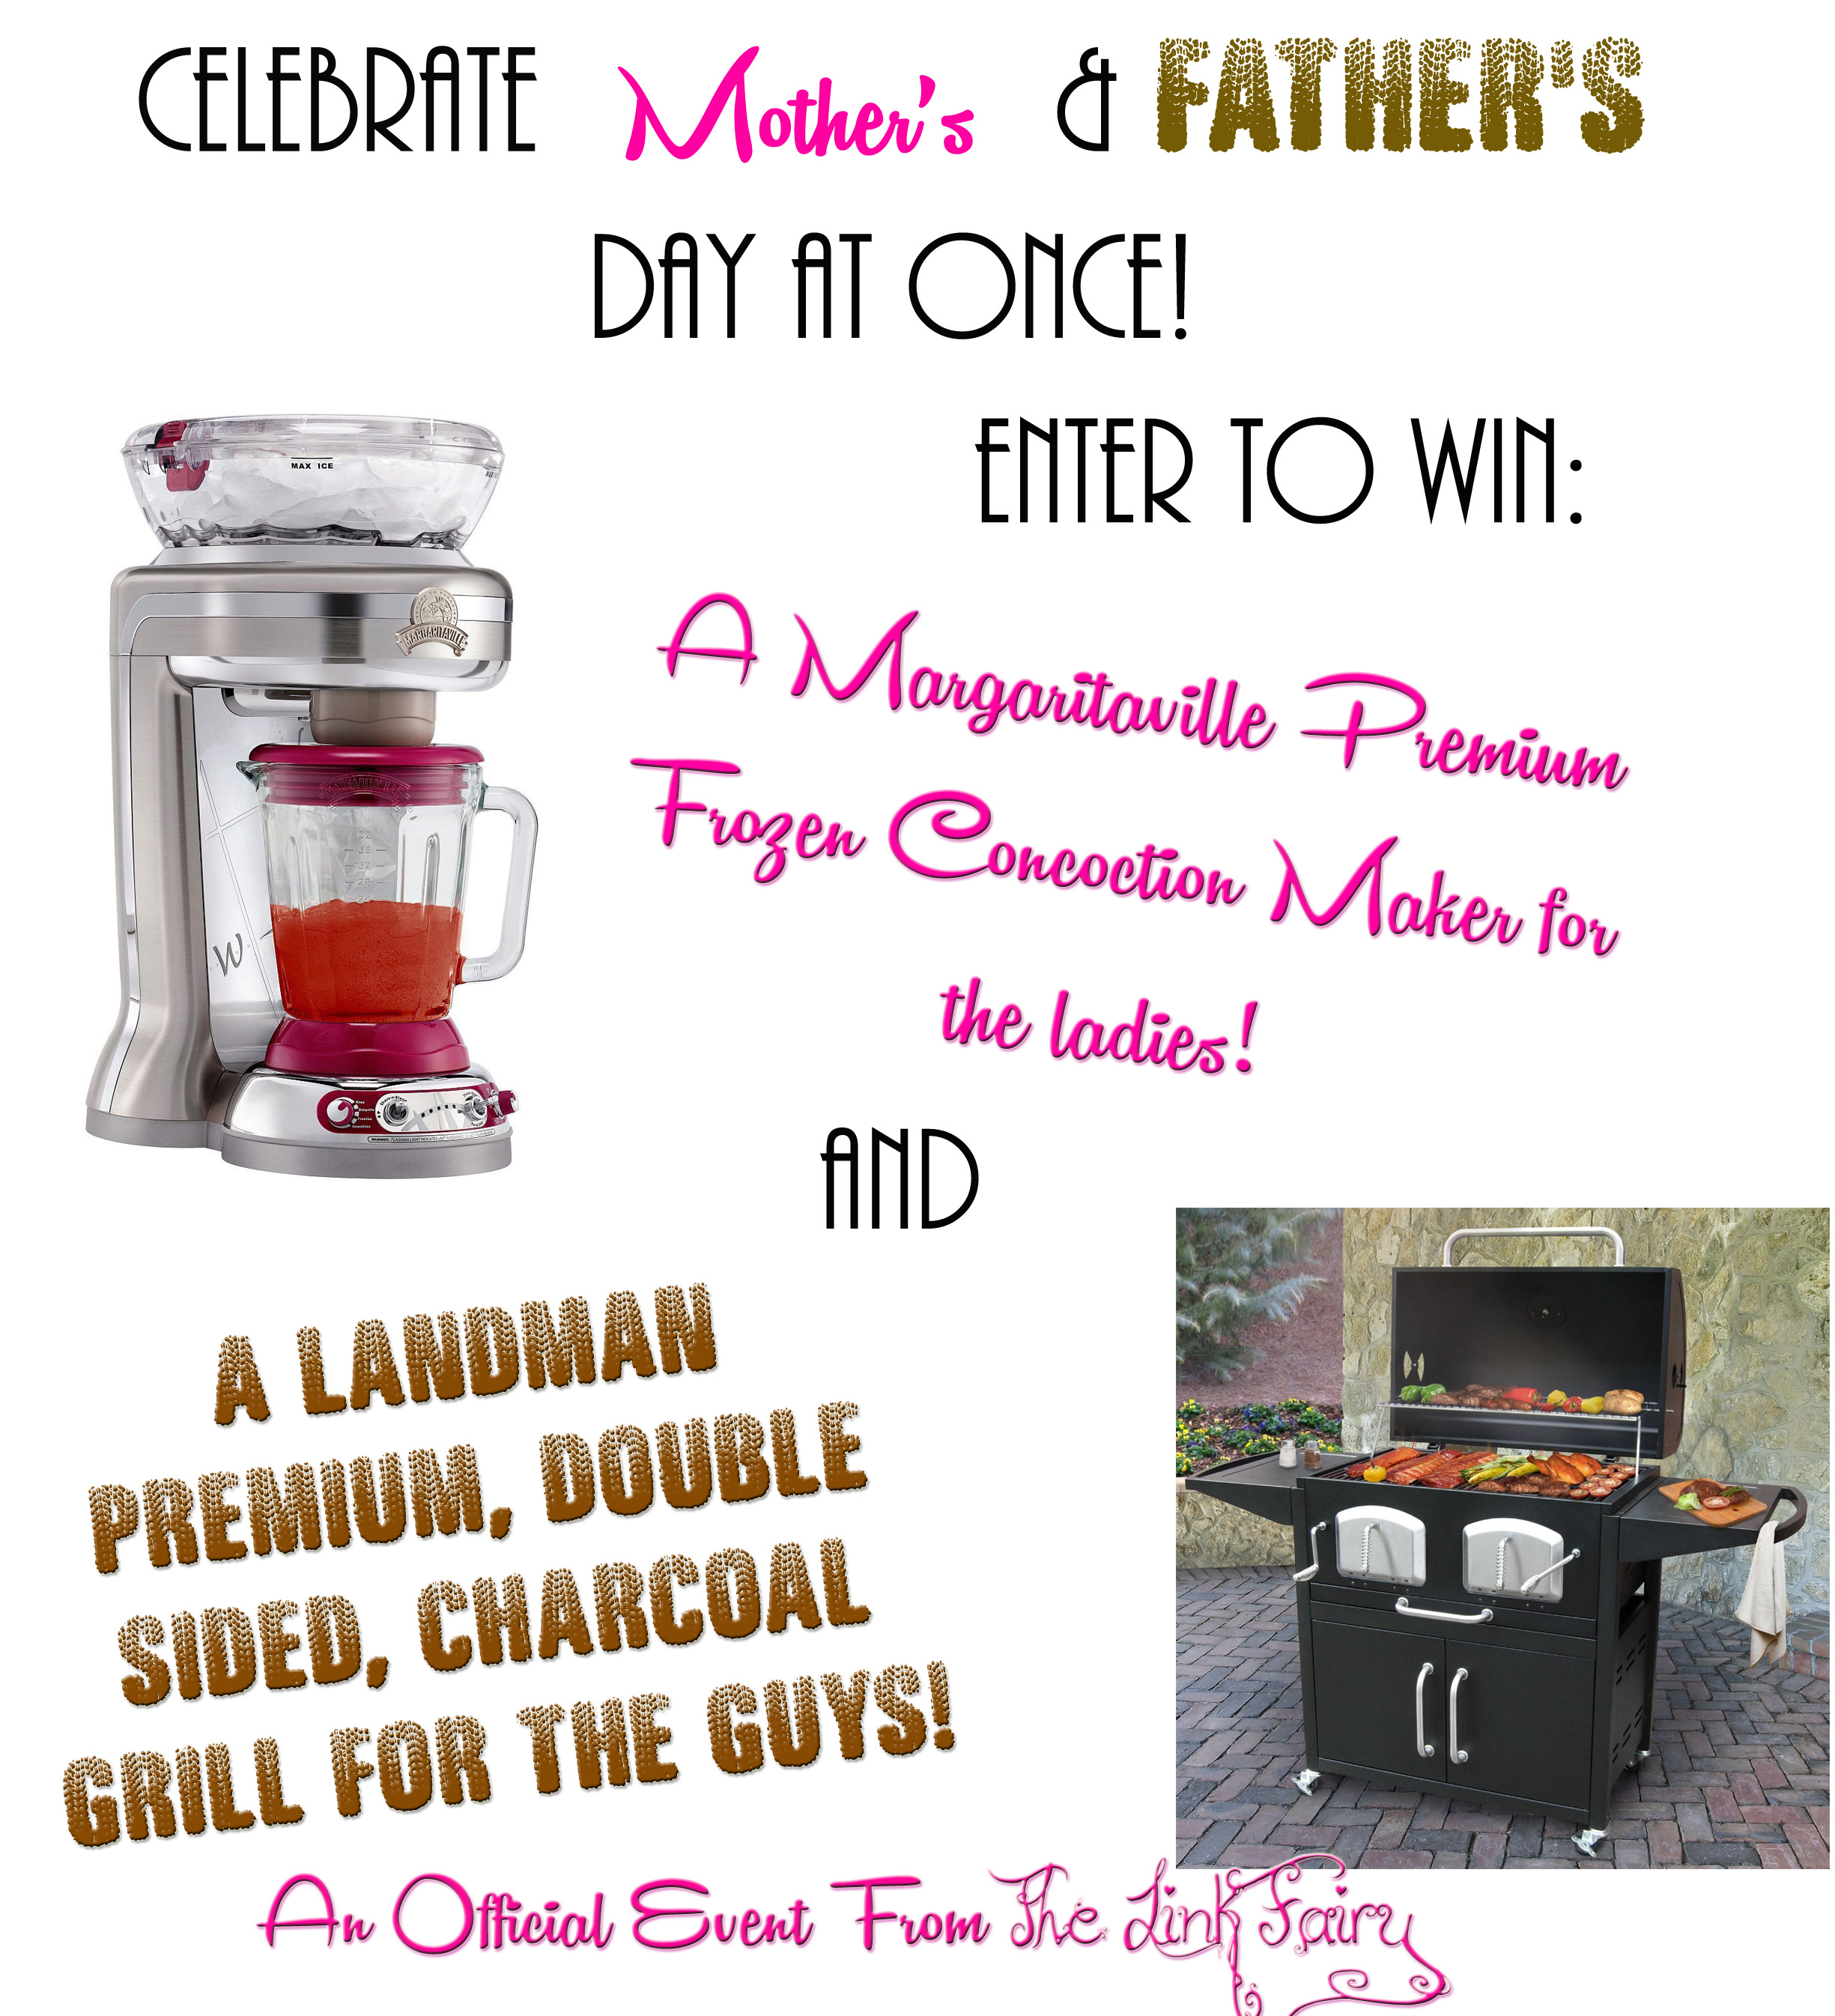 Enter to win a Margaritaville Frozen Drink Maker and a Landmann Double-Sided Charcoal Grill!